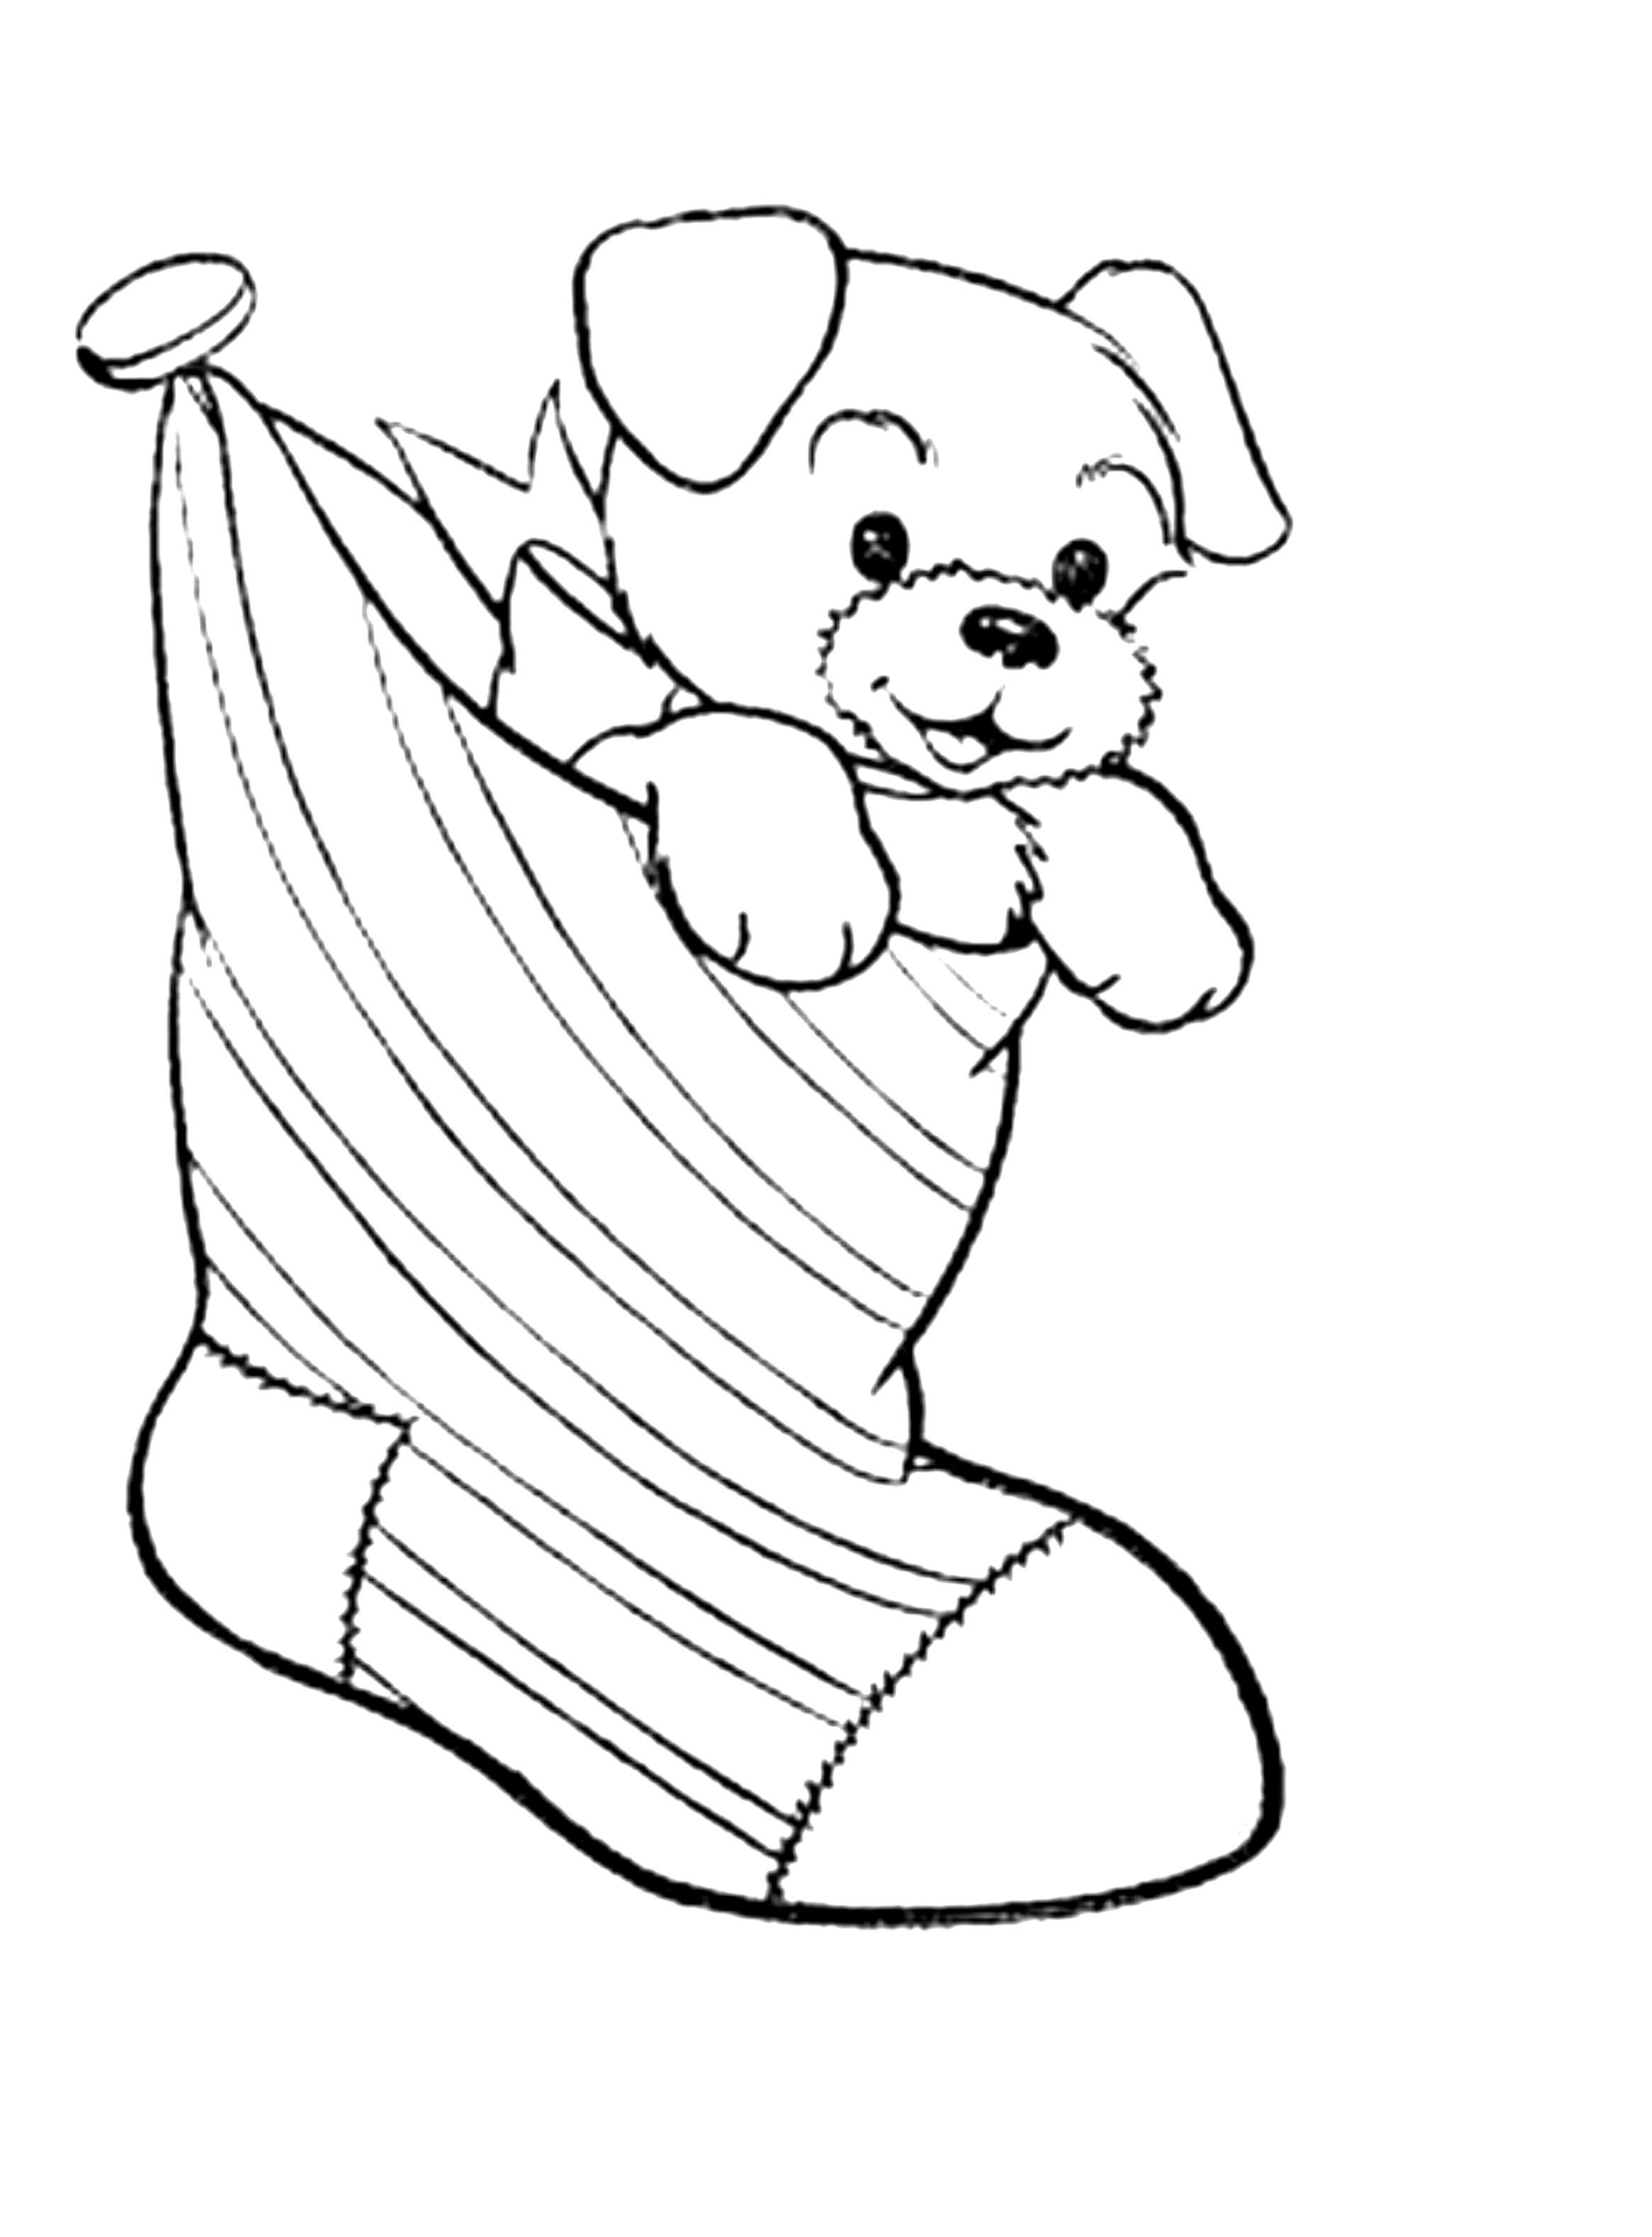 printable puppy coloring pages - puppy coloring pages